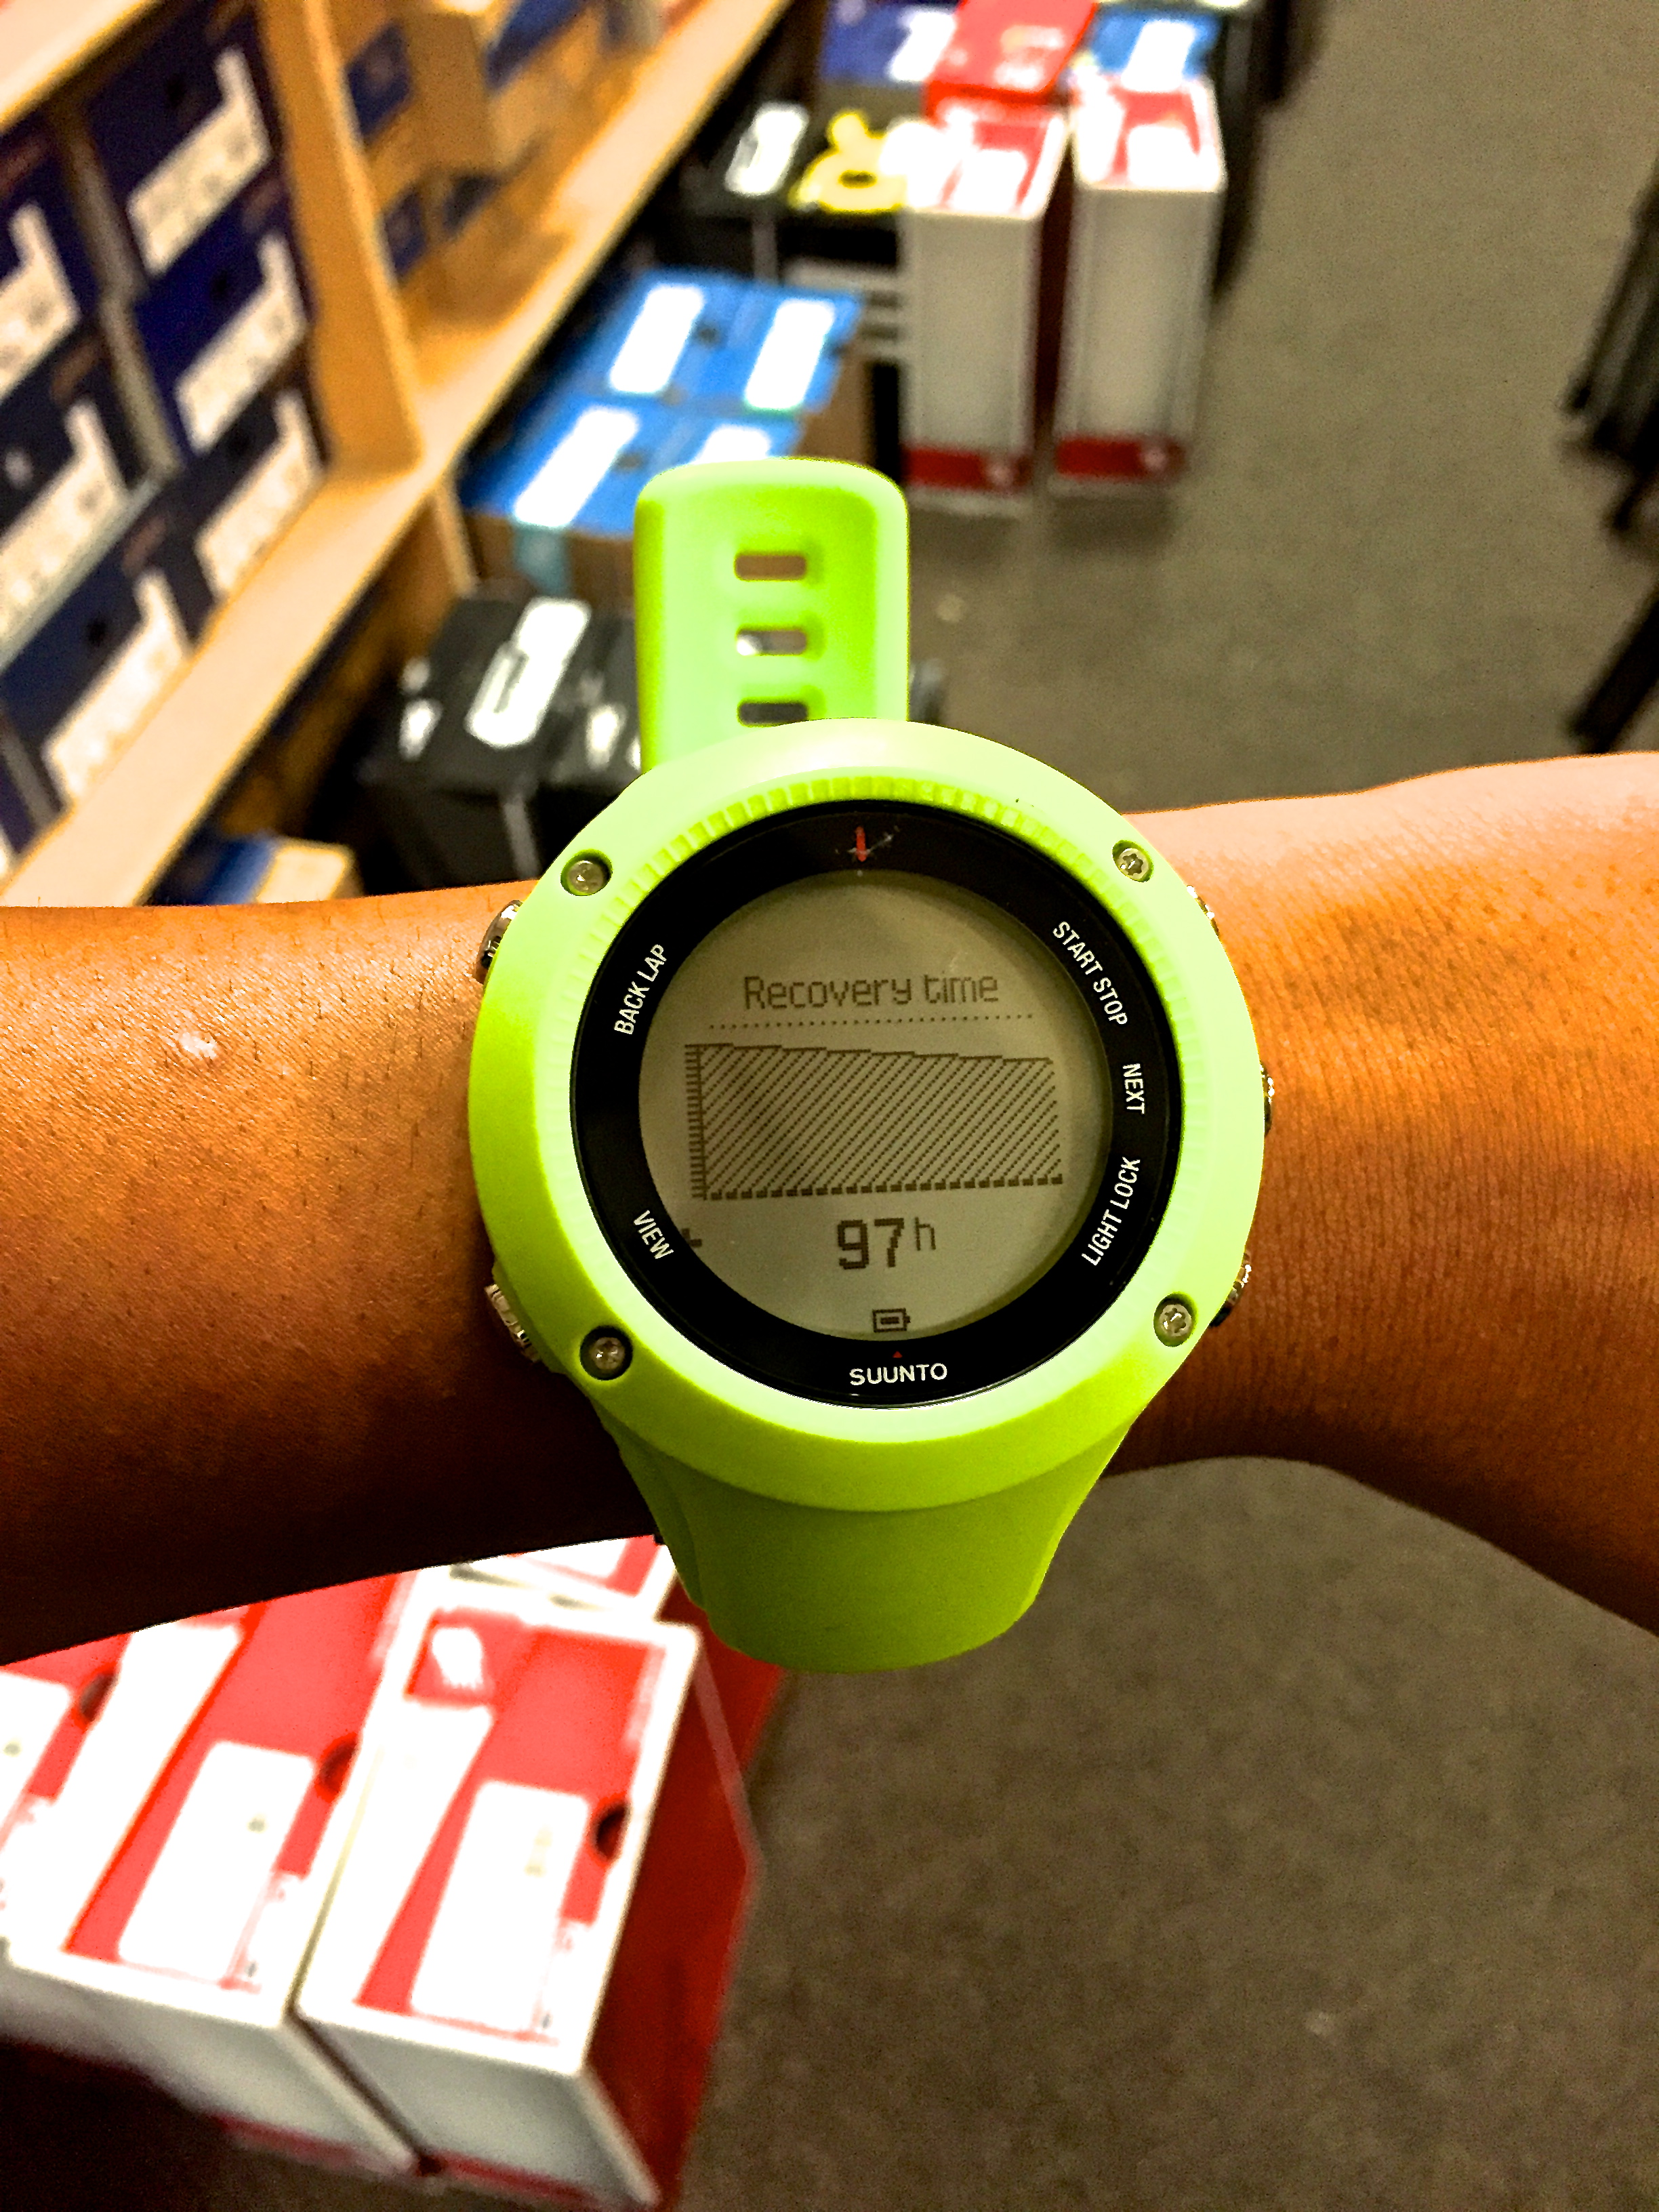 Watch with wrist hrm - Recovery Time